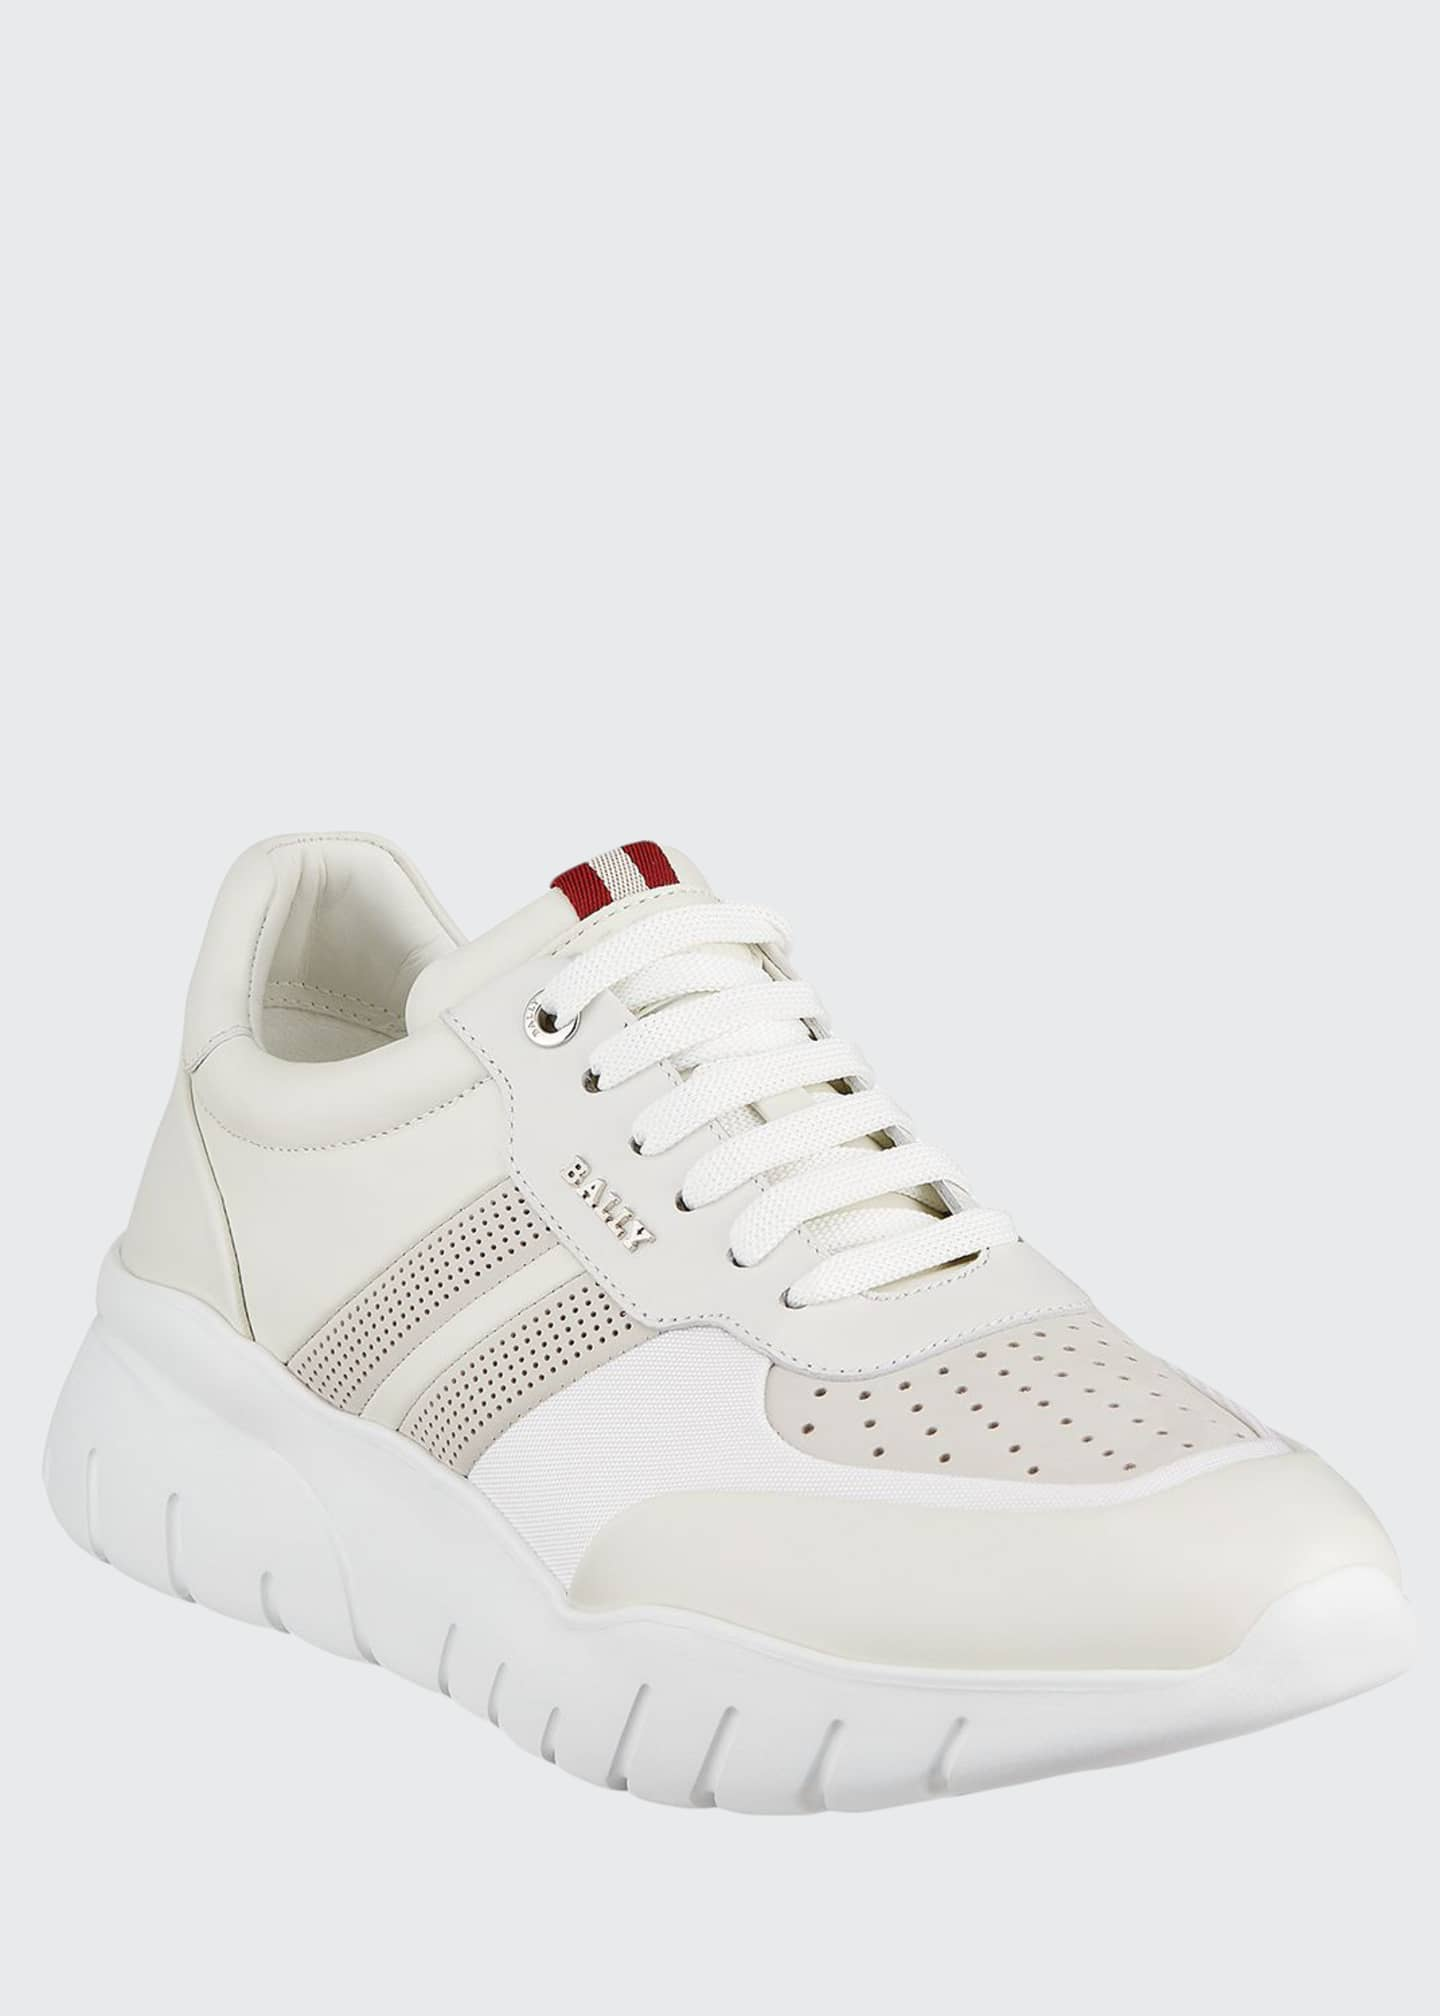 Image 1 of 4: Men's Bison Perforated Lamb Leather Sneakers